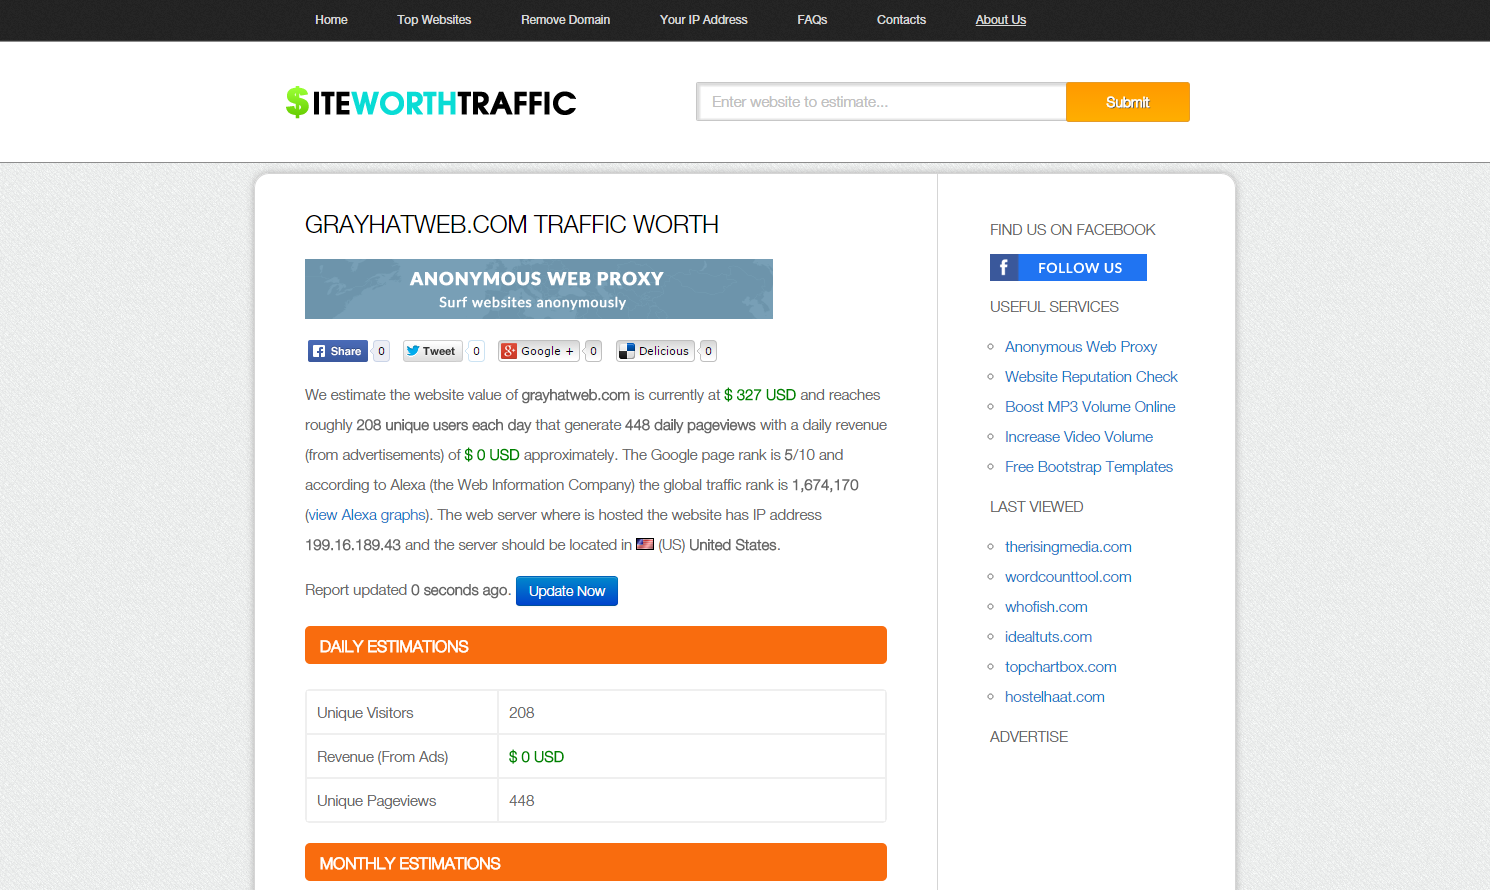 Site Worth Traffic